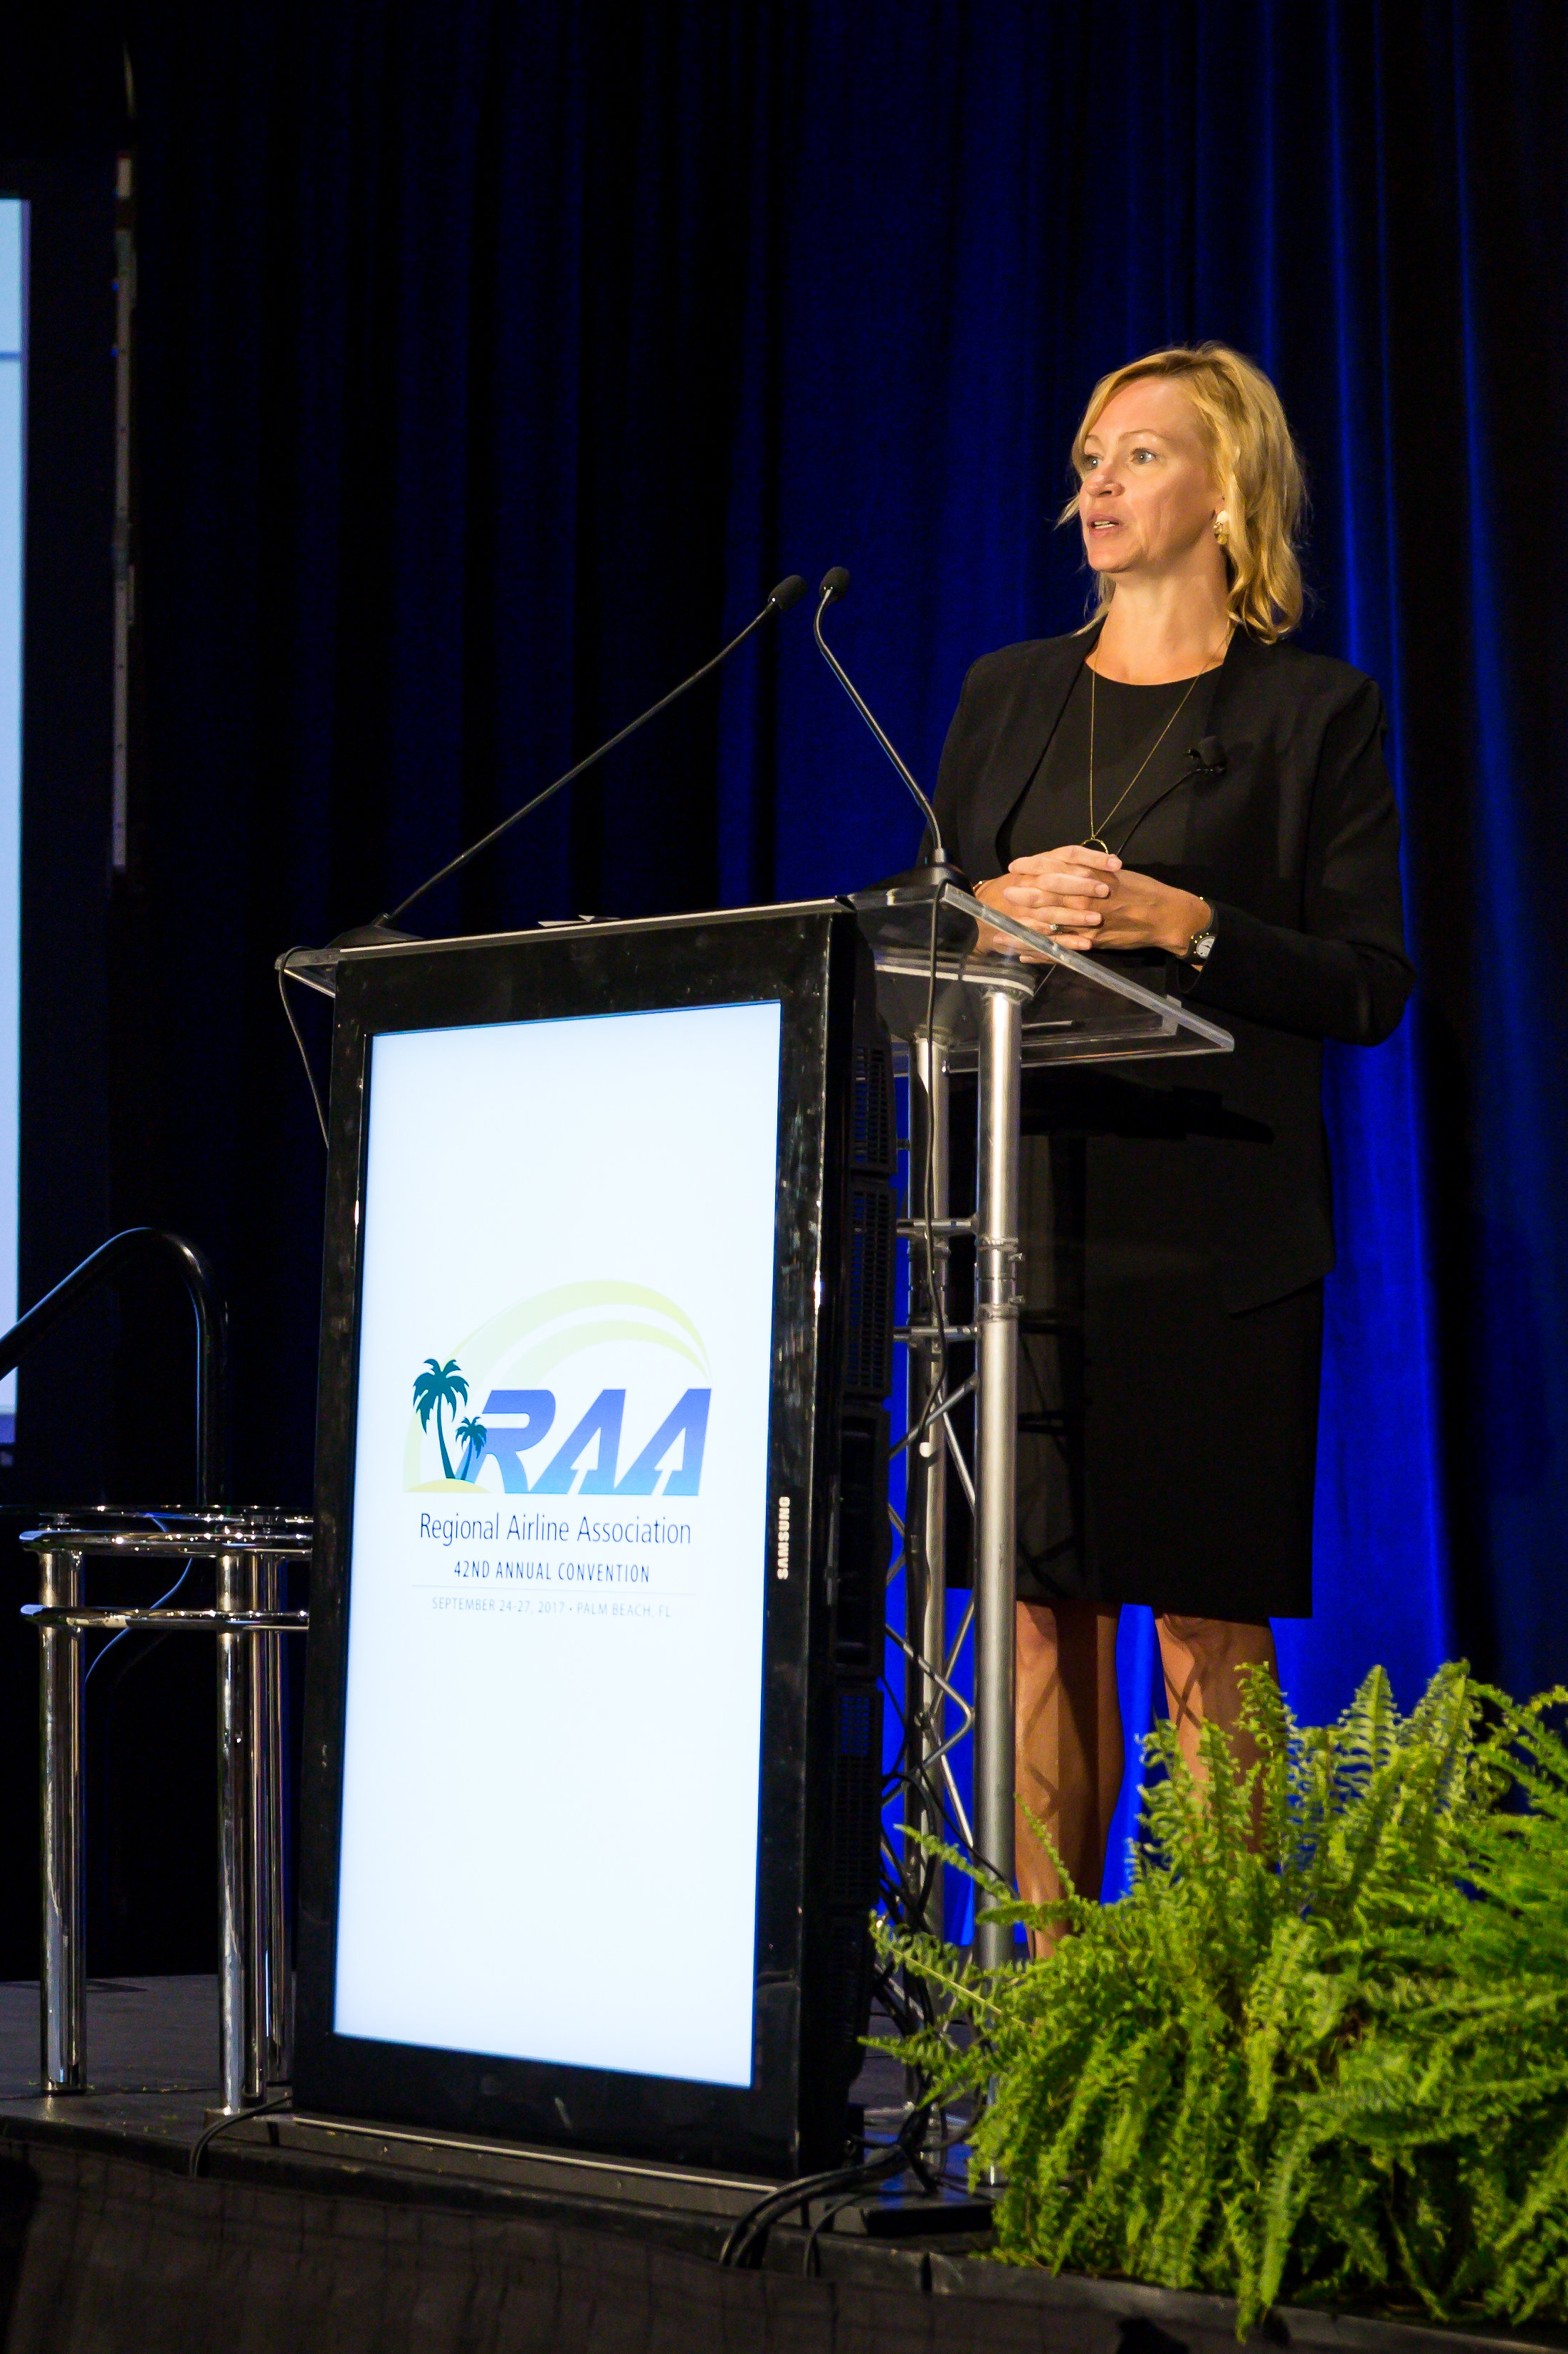 regional-airline-associaion-conference-2017-coastal-click-photography-2519